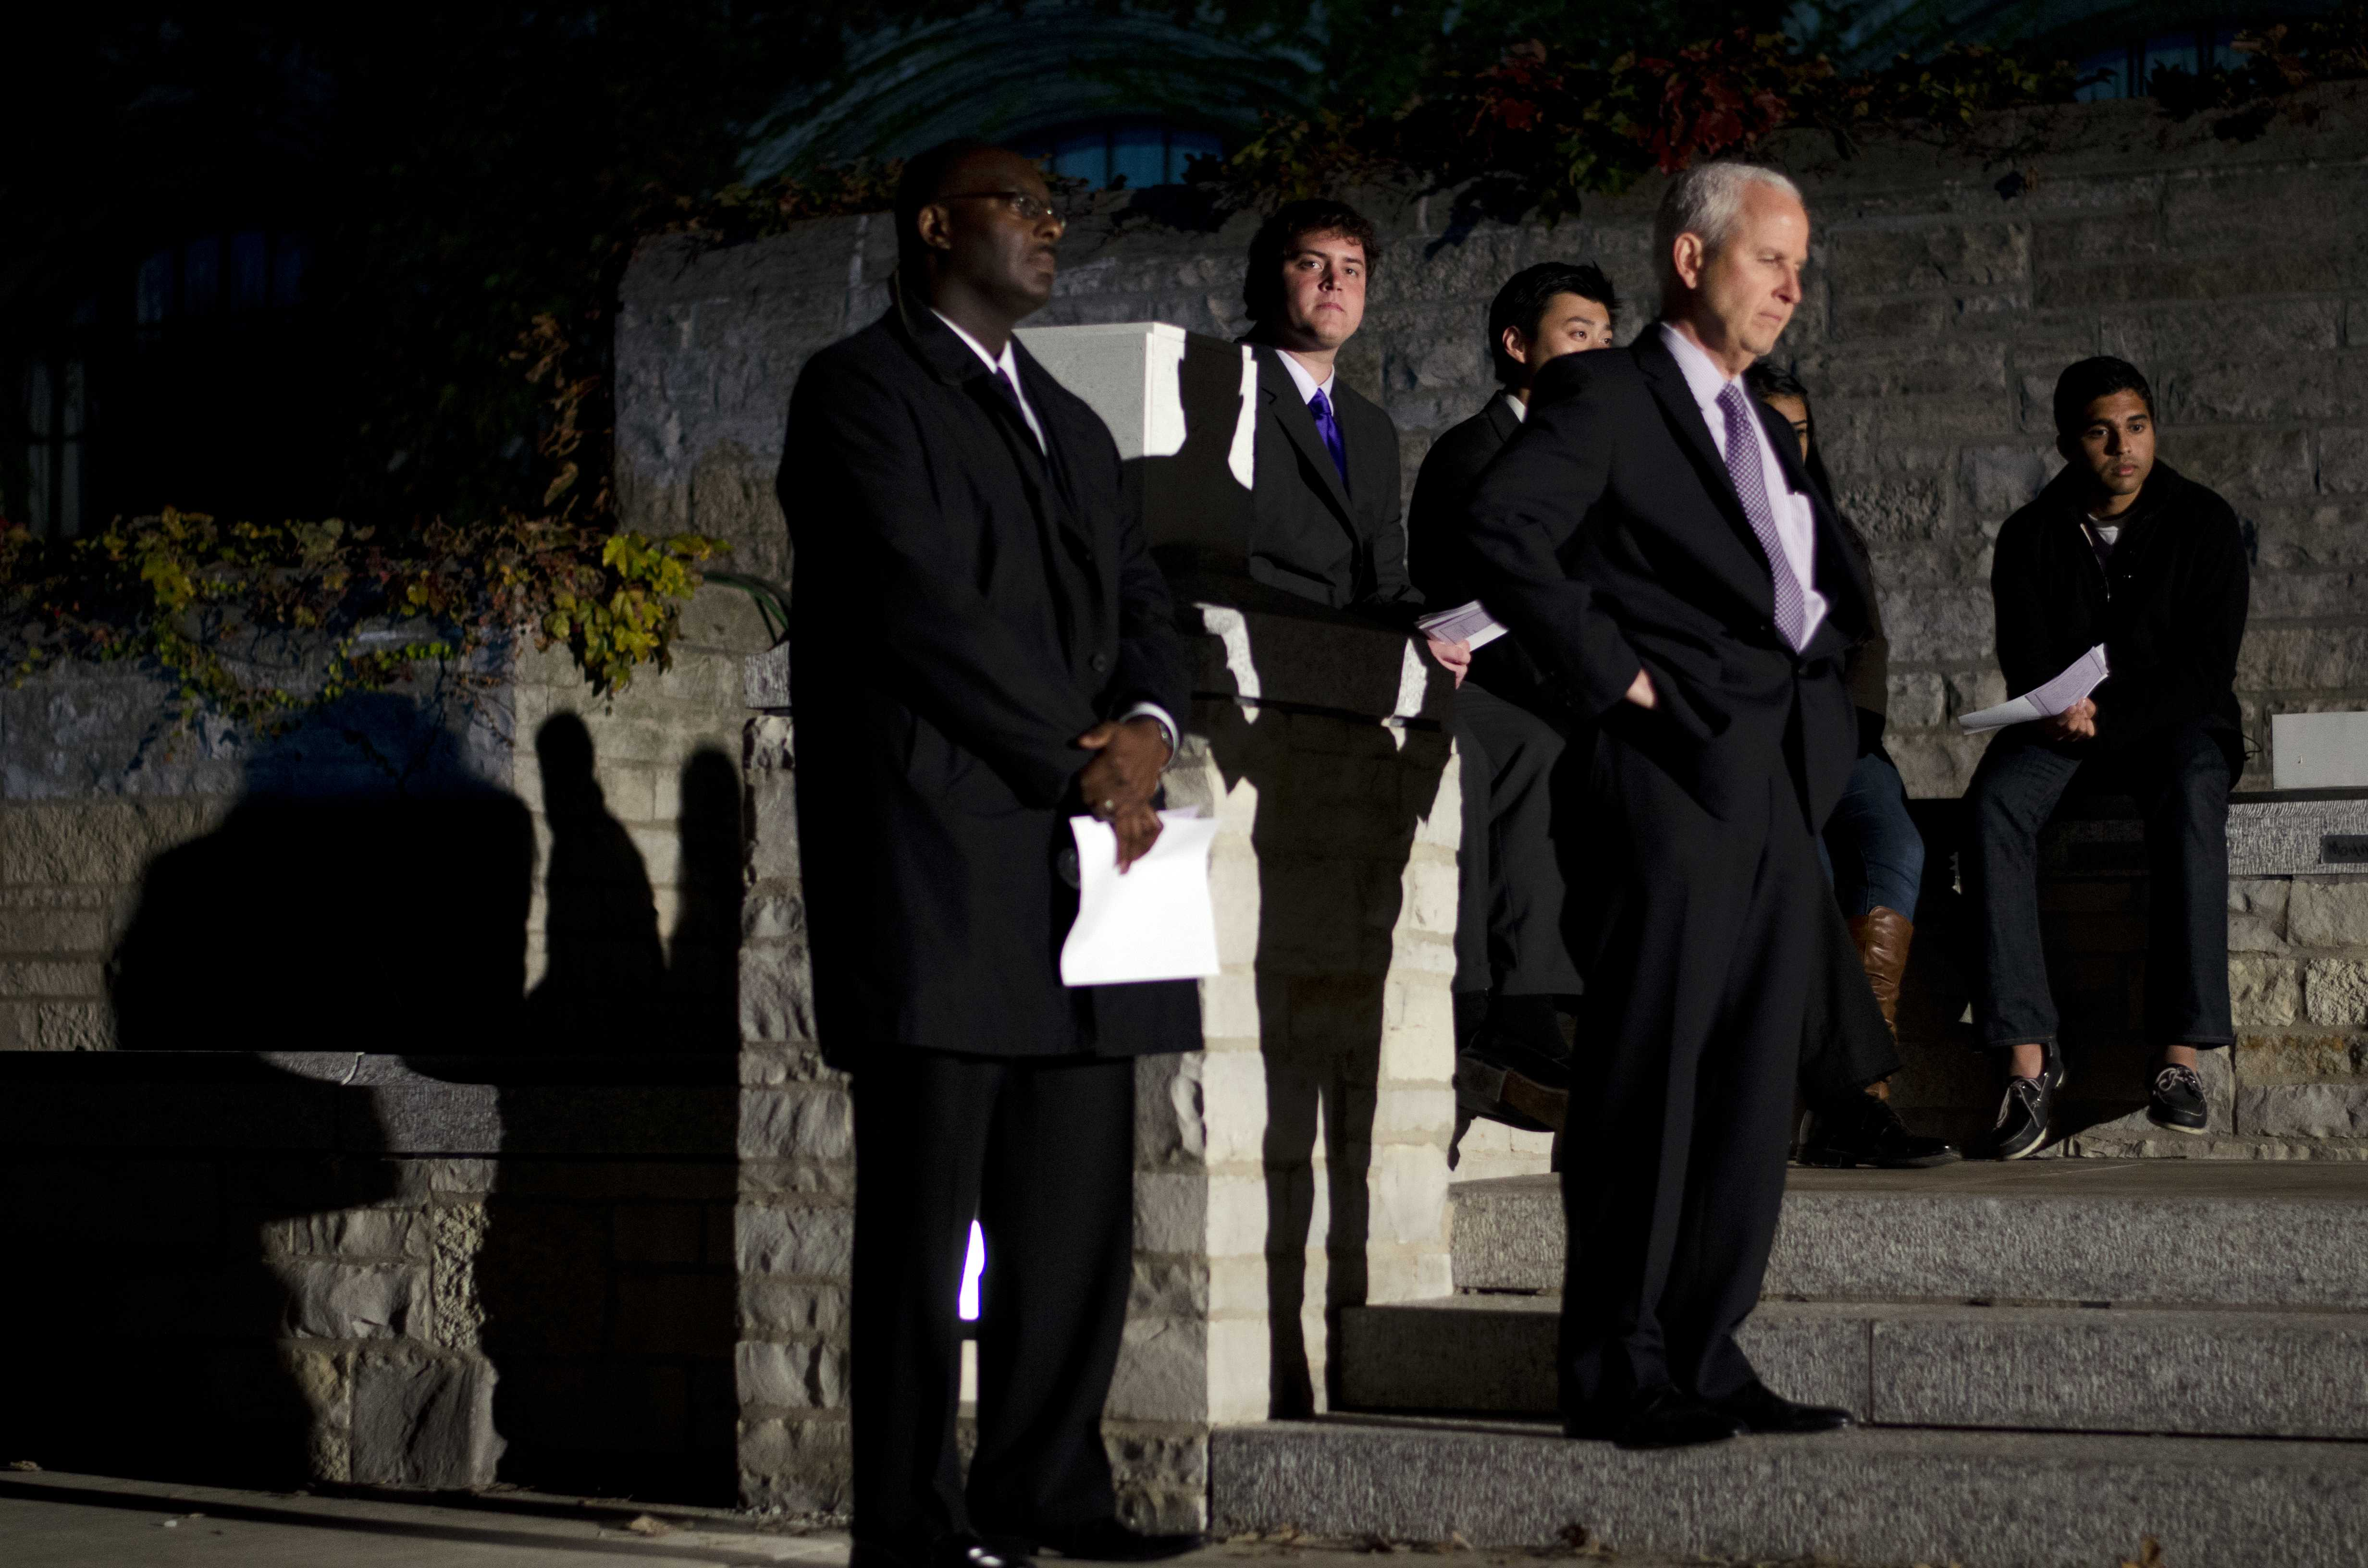 Burgwell Howard, assistant vice president for student engagement, and University President Morton Schapiro (left to right in the foreground) watch on as student commemorate Harsha Maddula, the missing student whose body was found in Lake Michigan on Thursday evening.